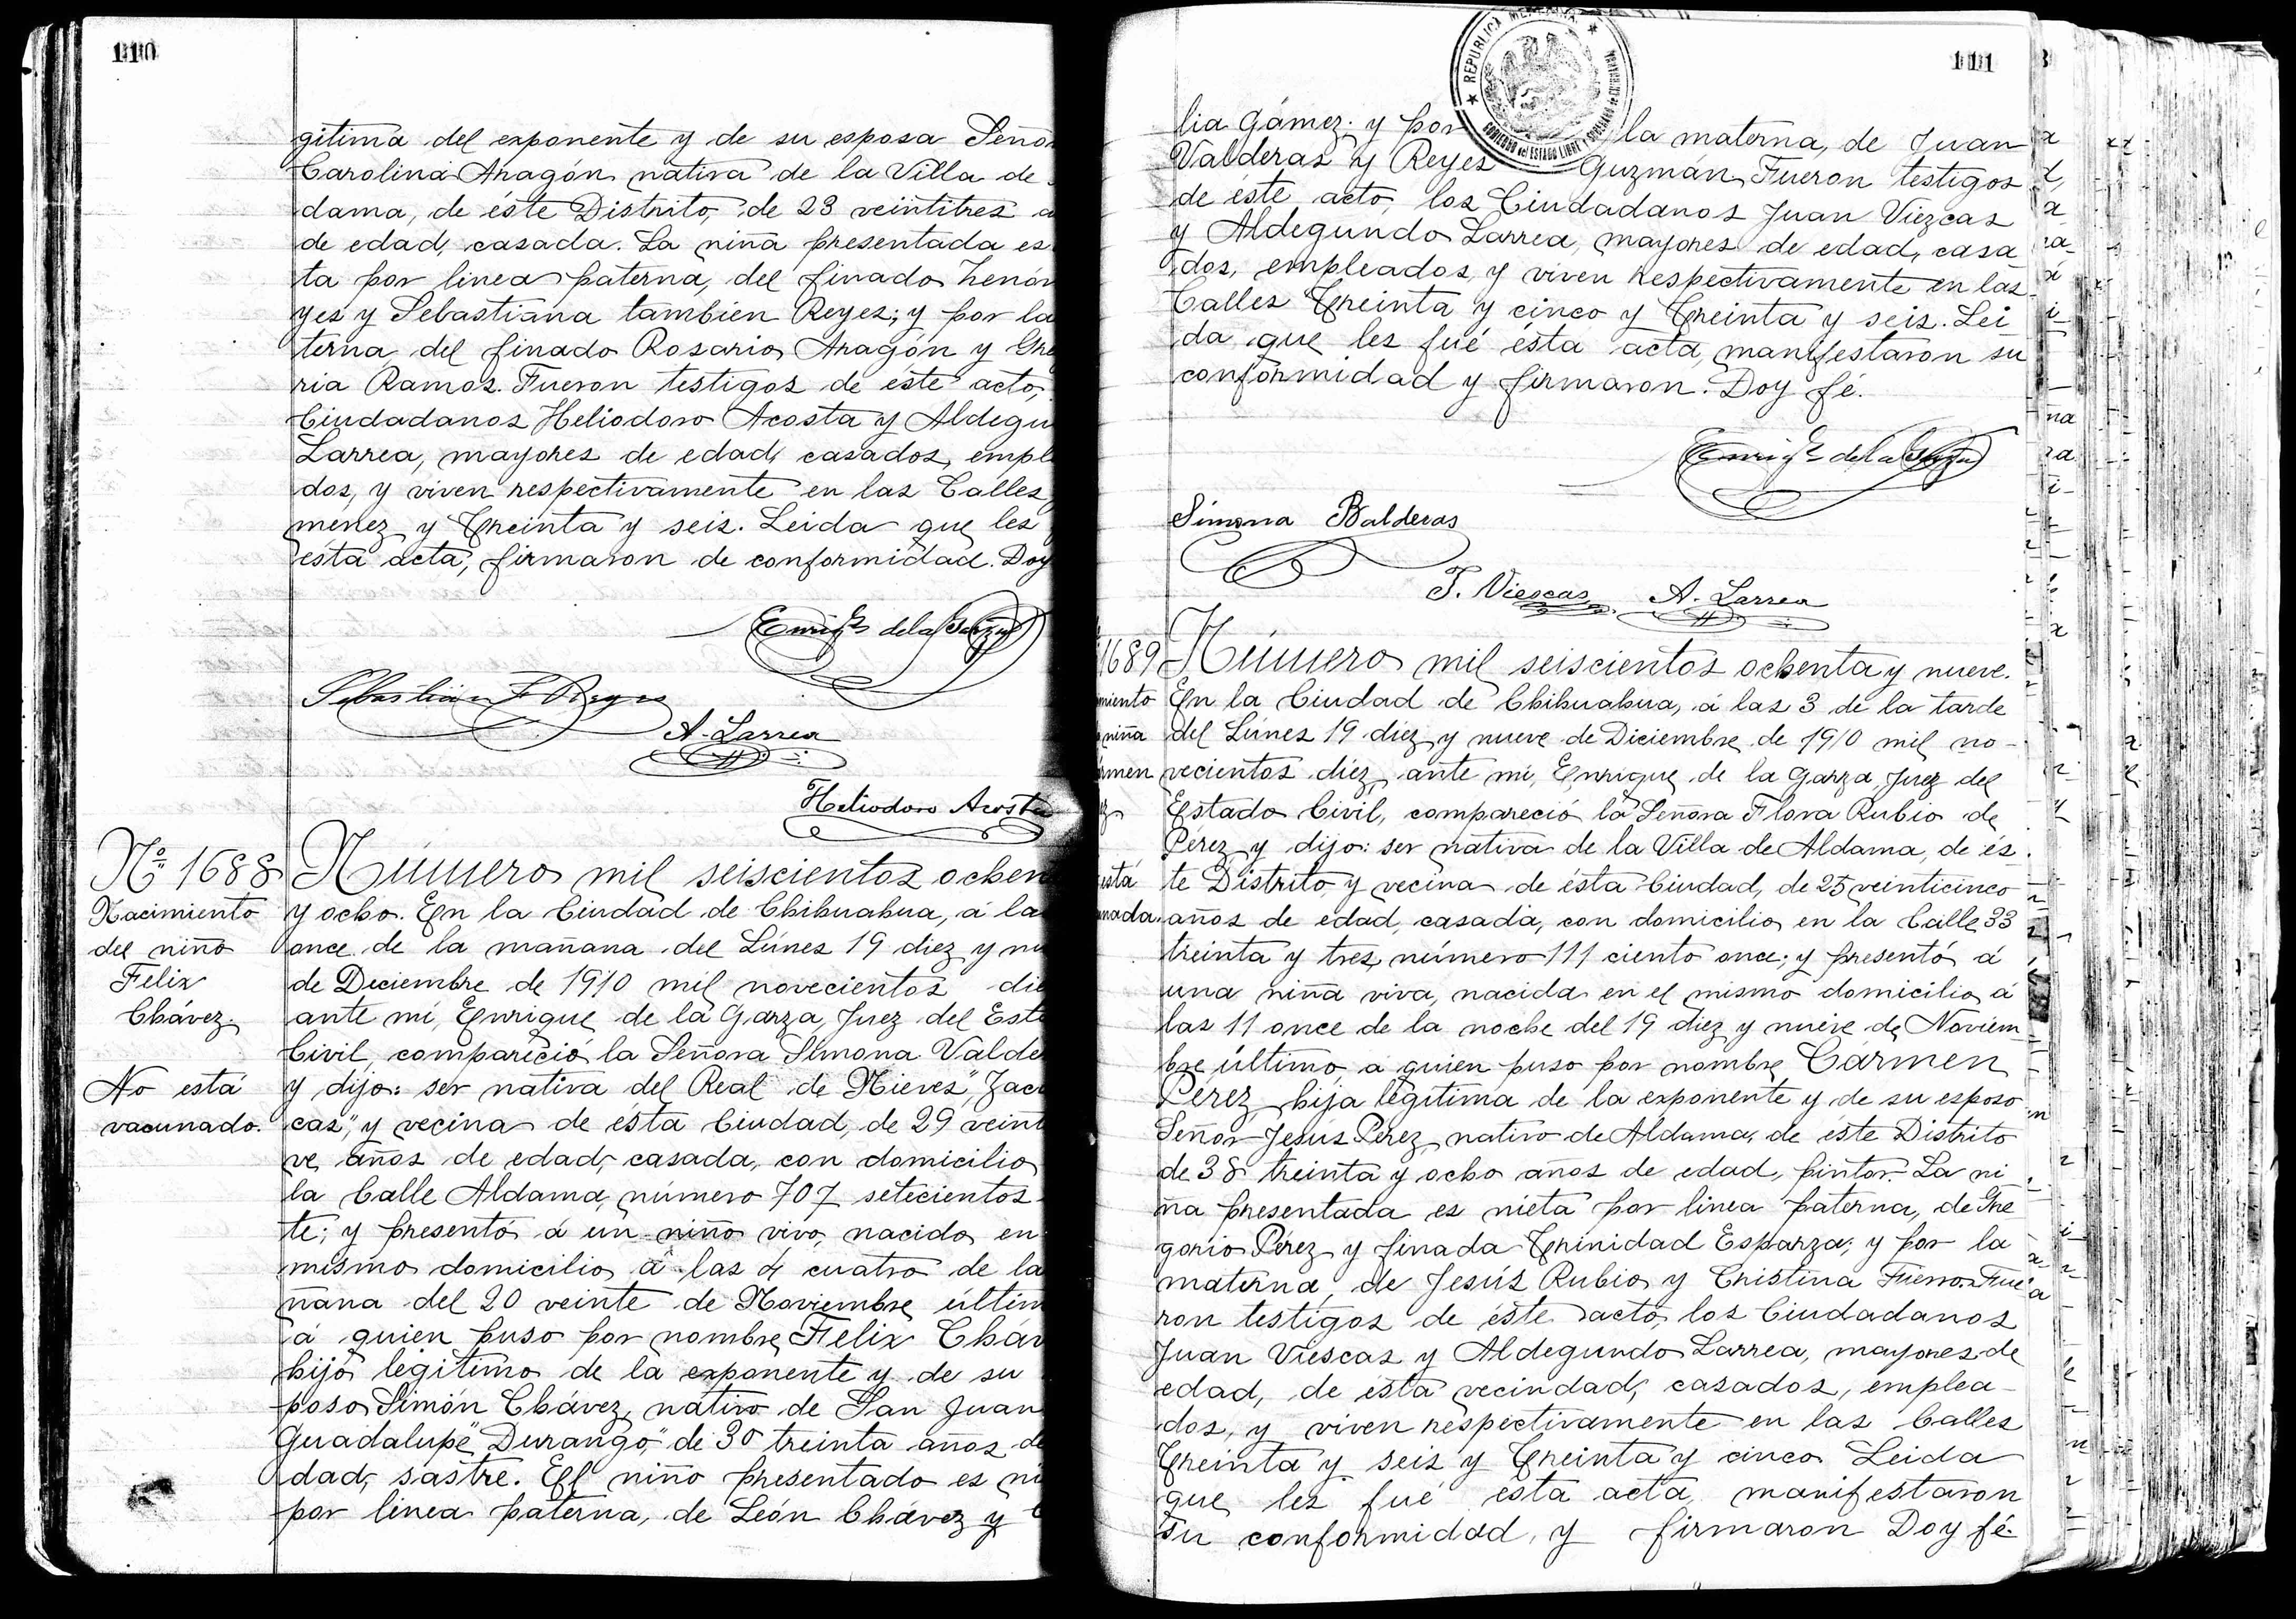 Chihuahua birth record of Felix Chávez Sr.